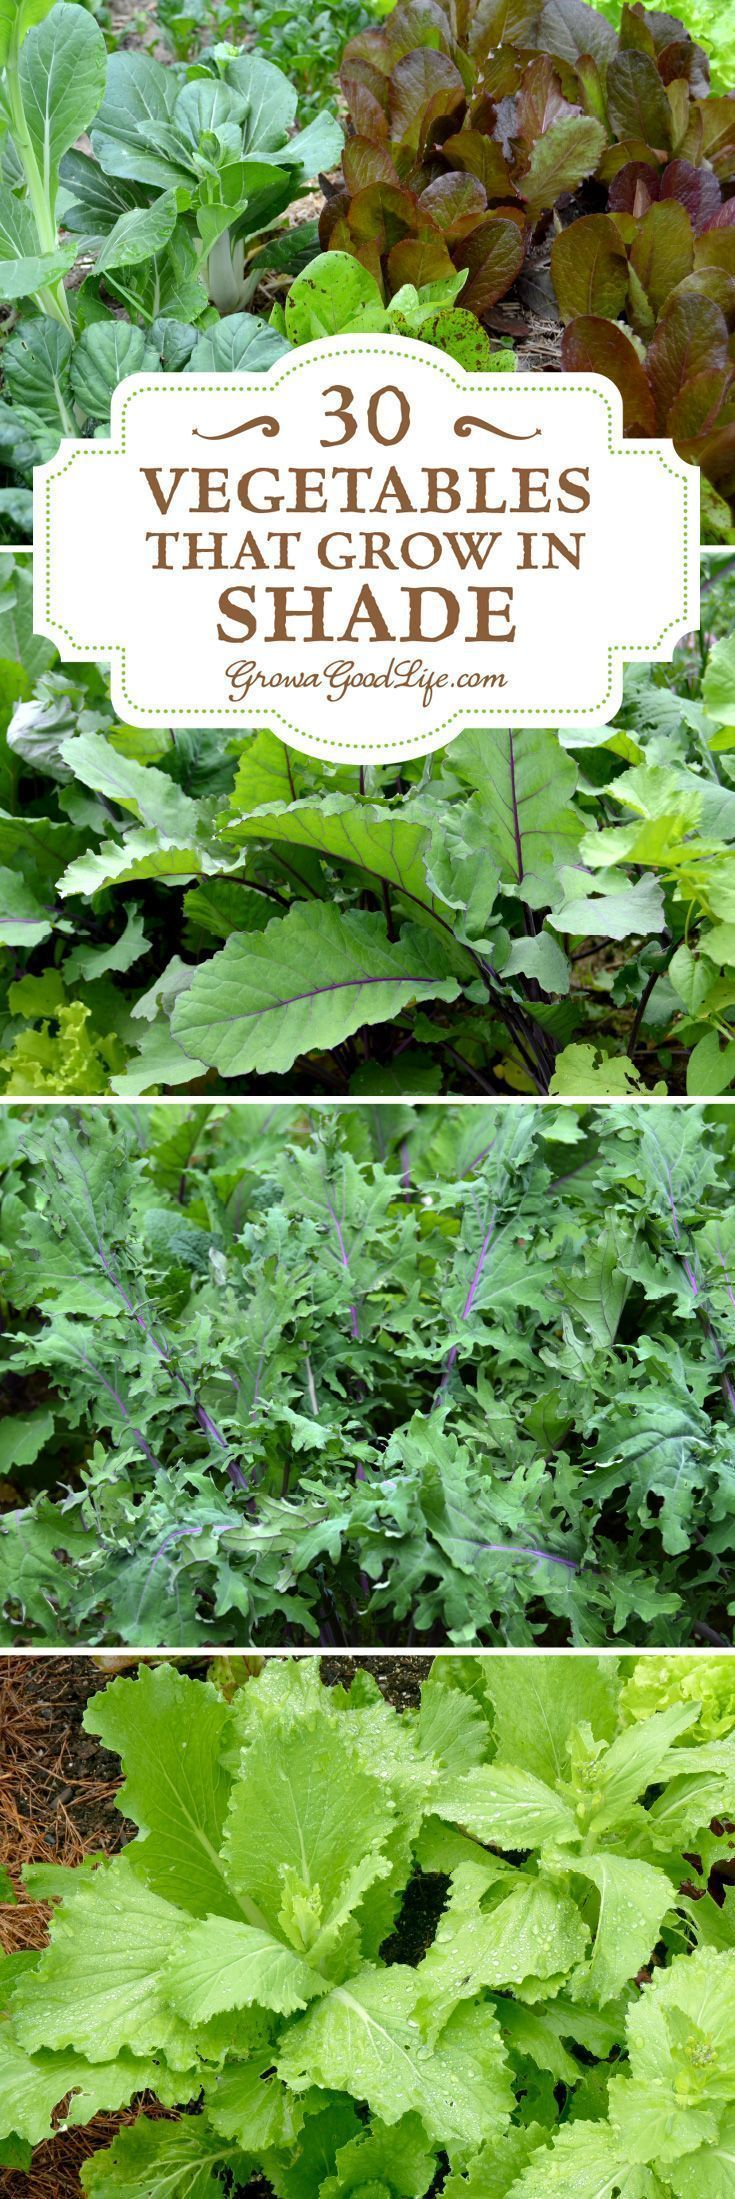 Vegetables That Grow in Shade Do you have an area of your garden that is shaded part of the day If you think you cant grow anything there, you are wrong. There are many vegetables that grow in shade. Some even thrive when sheltered from the intense rays from the summer sun. Consider experimenting with these vegetables that grow in shade.Do ...